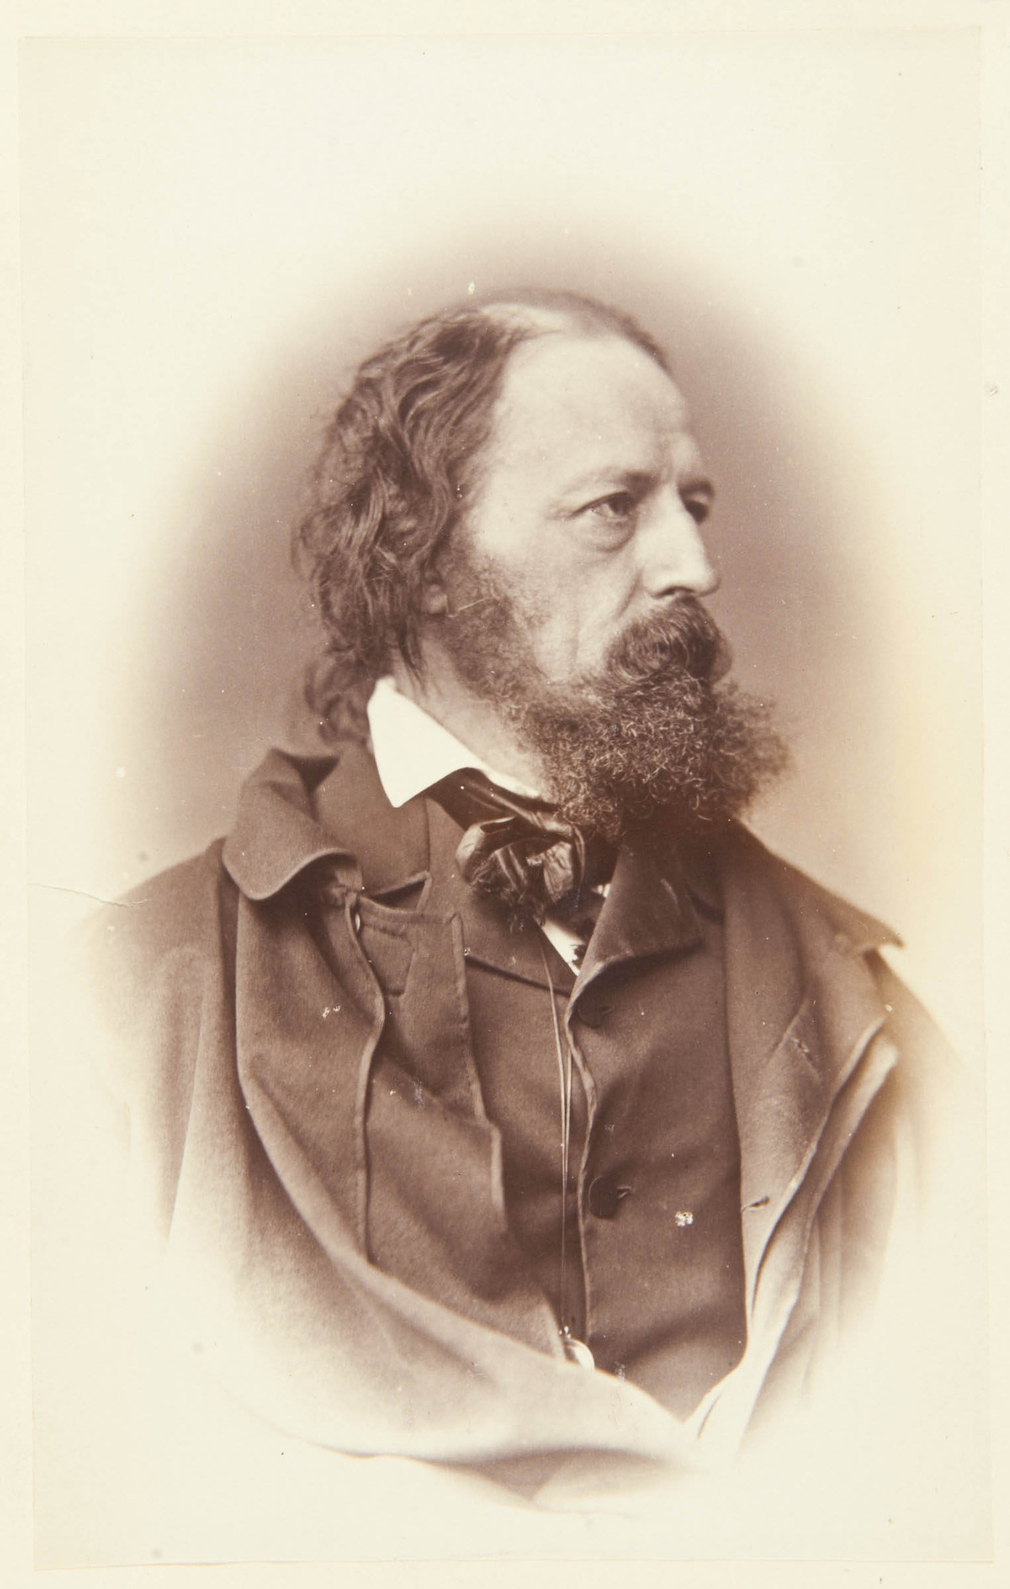 Photograph of the poet Alfred Tennyson facing three-quarters right. He wears an overcoat or cloak over a jacket with high lapels. He wears a pince-nez or eyeglass attached to a string around his neck. Half-length portrait.